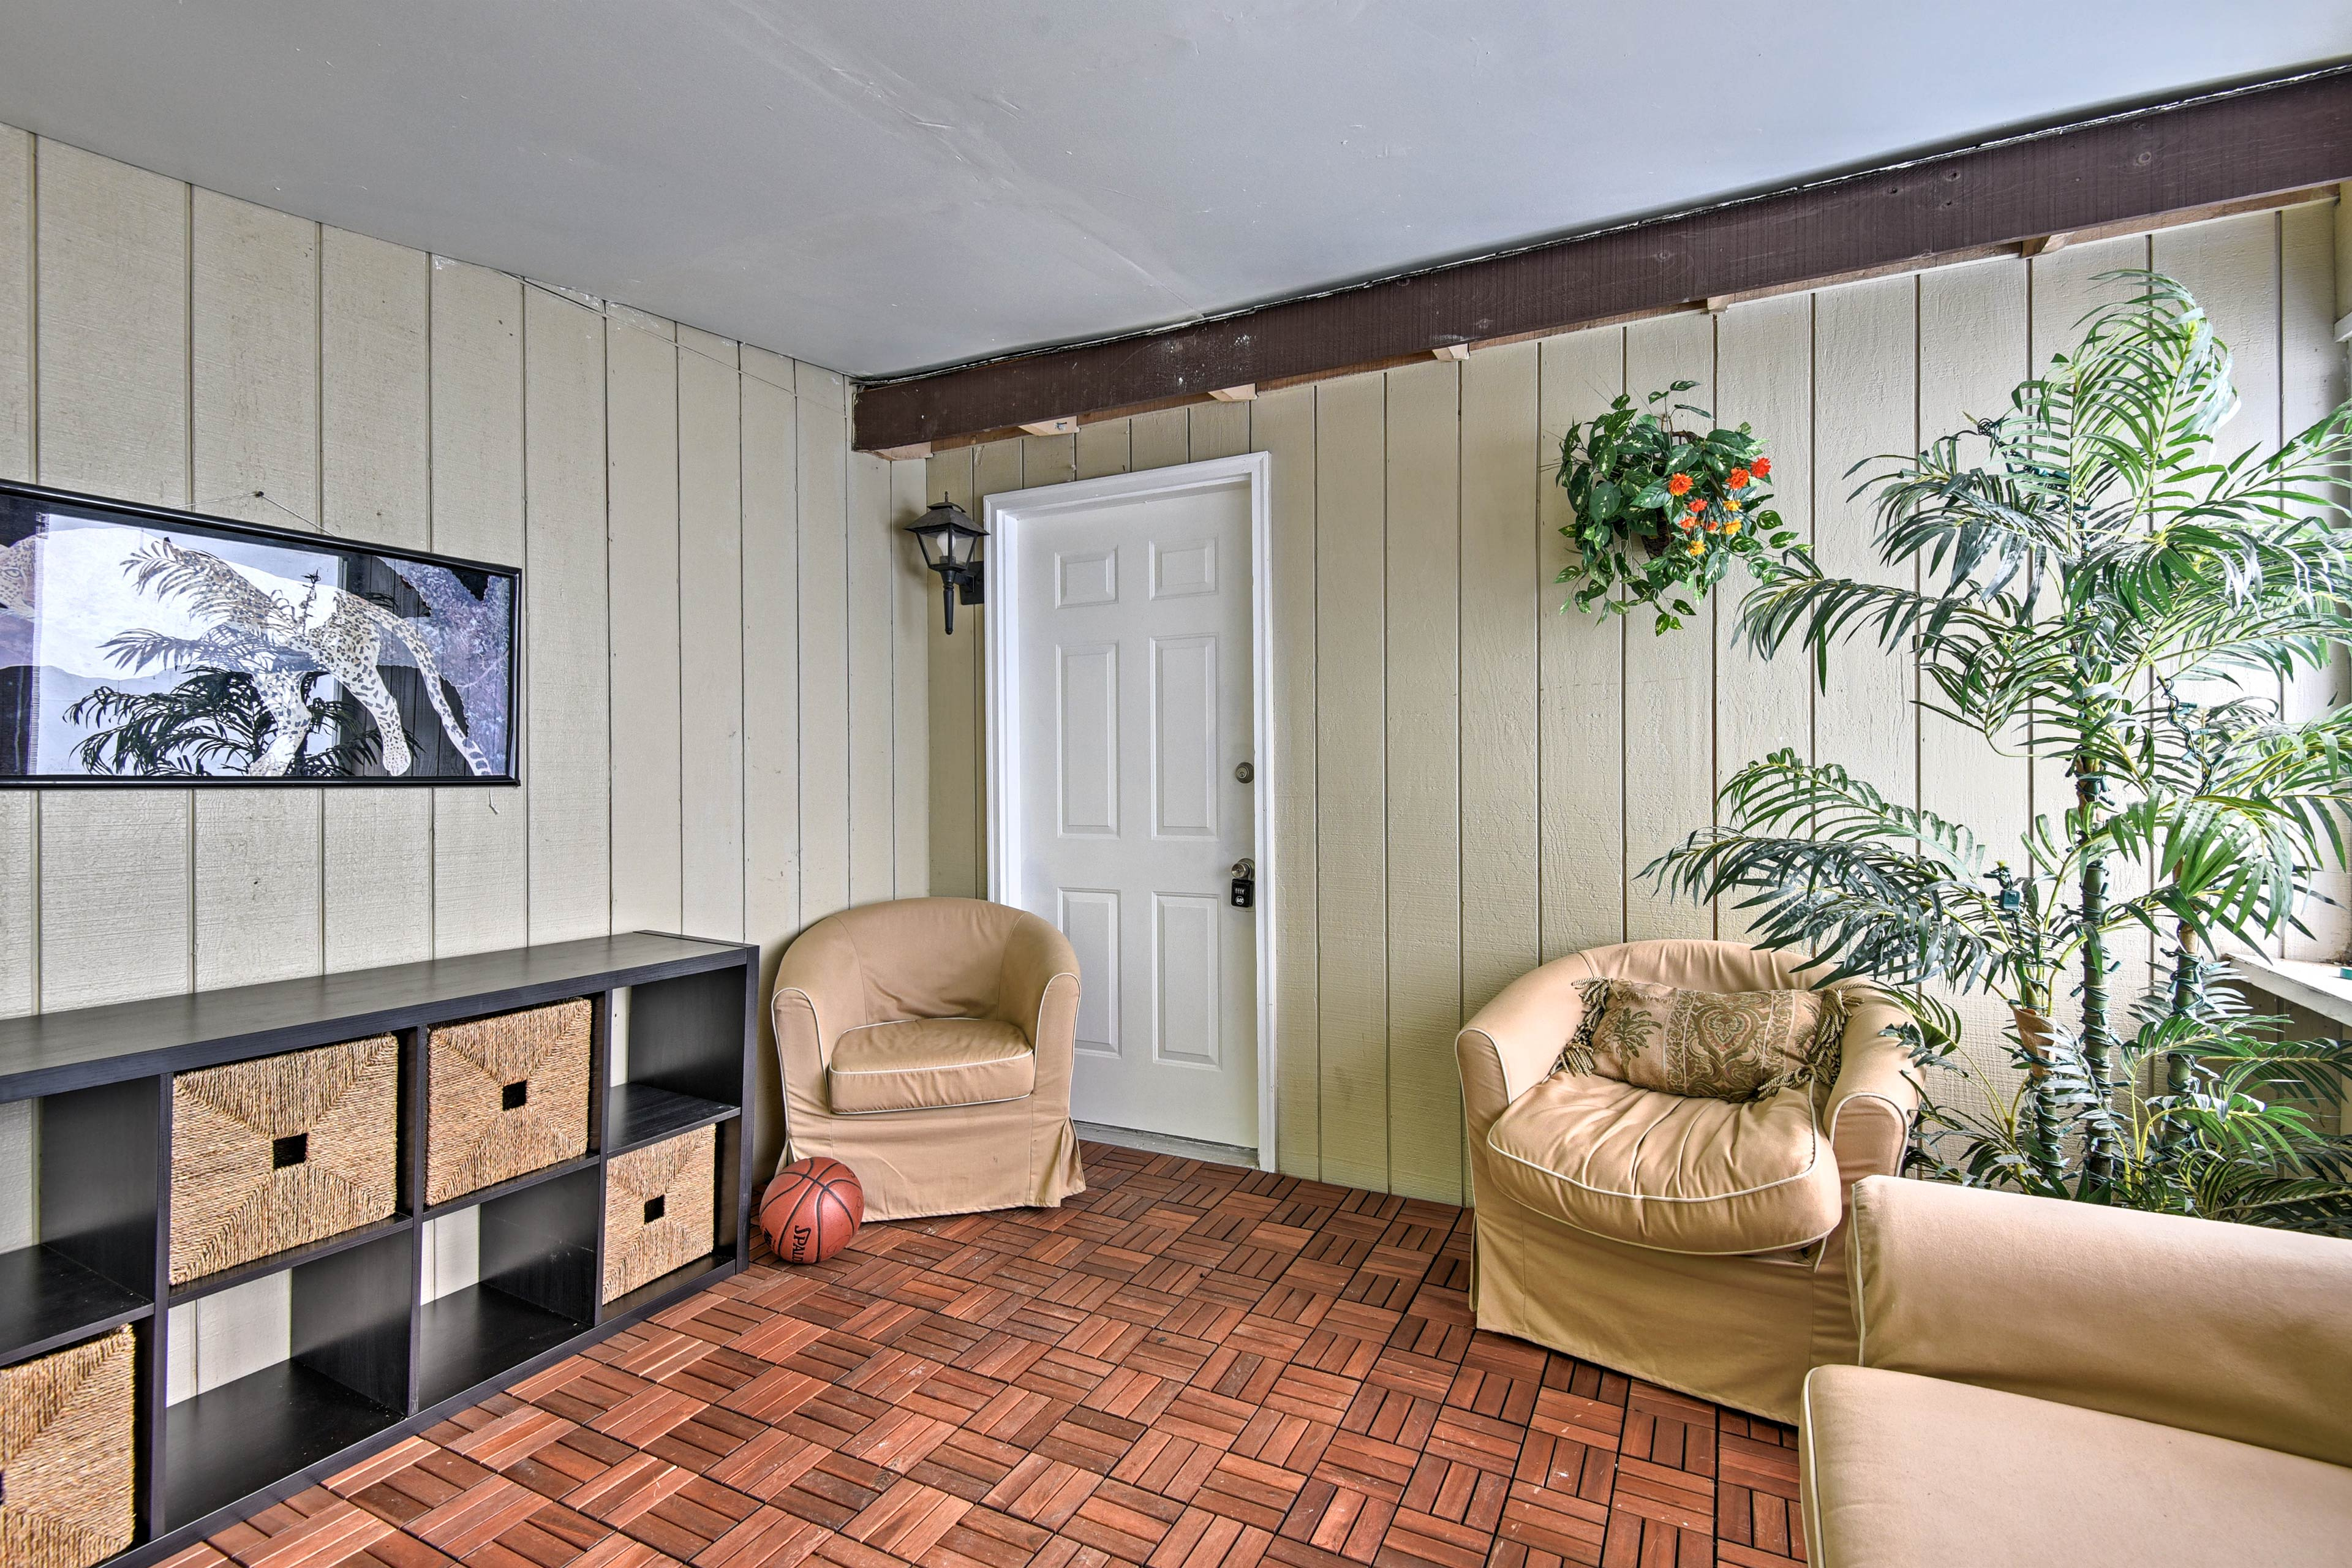 Seek solace in the furnished sunroom.